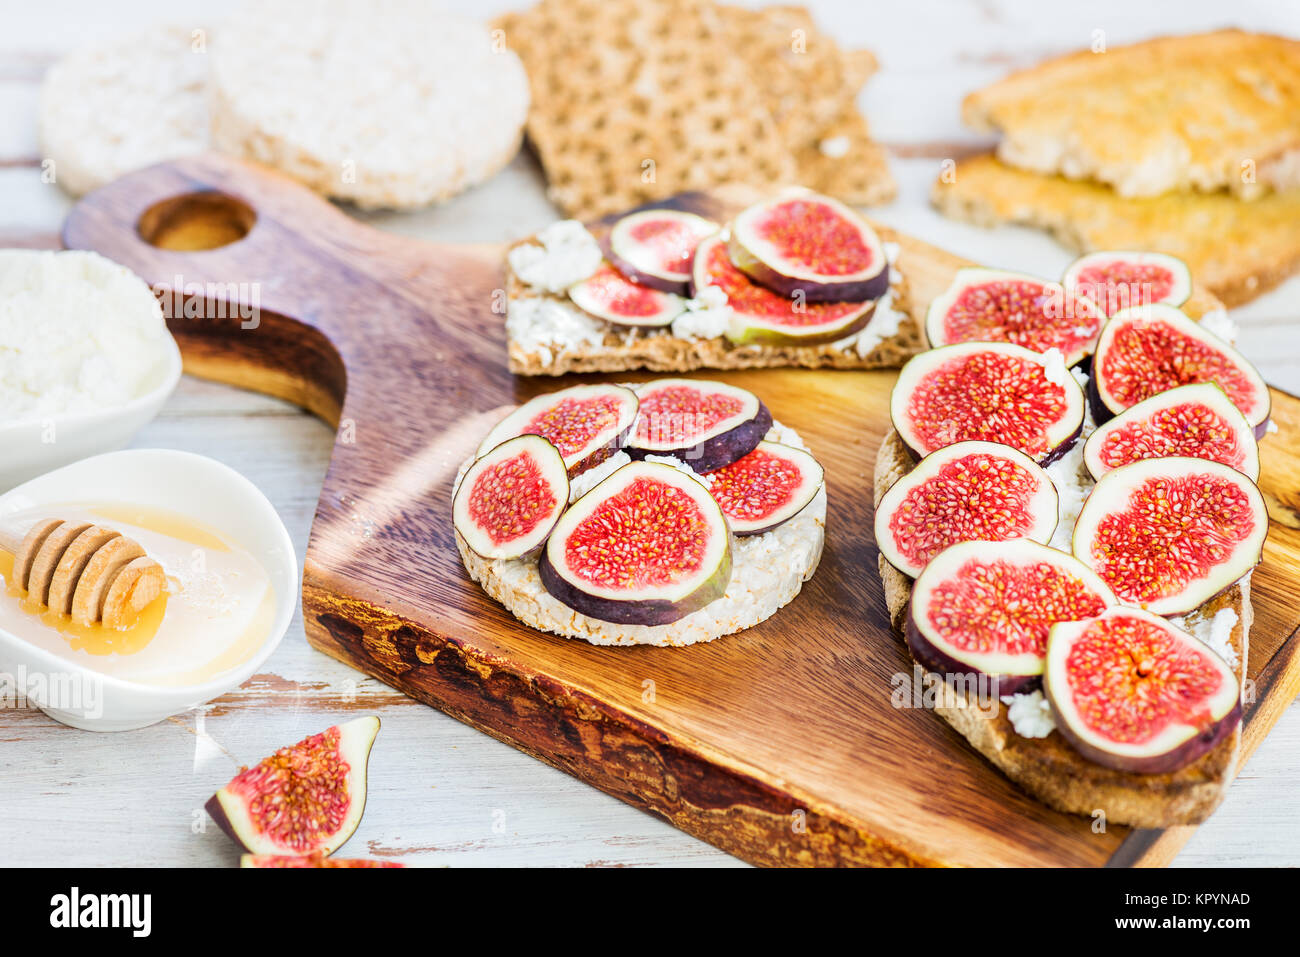 Various Healthy snacks from rice cake, wholegrain rye crispbread crackers and sourdough bread toasts together with - Stock Image